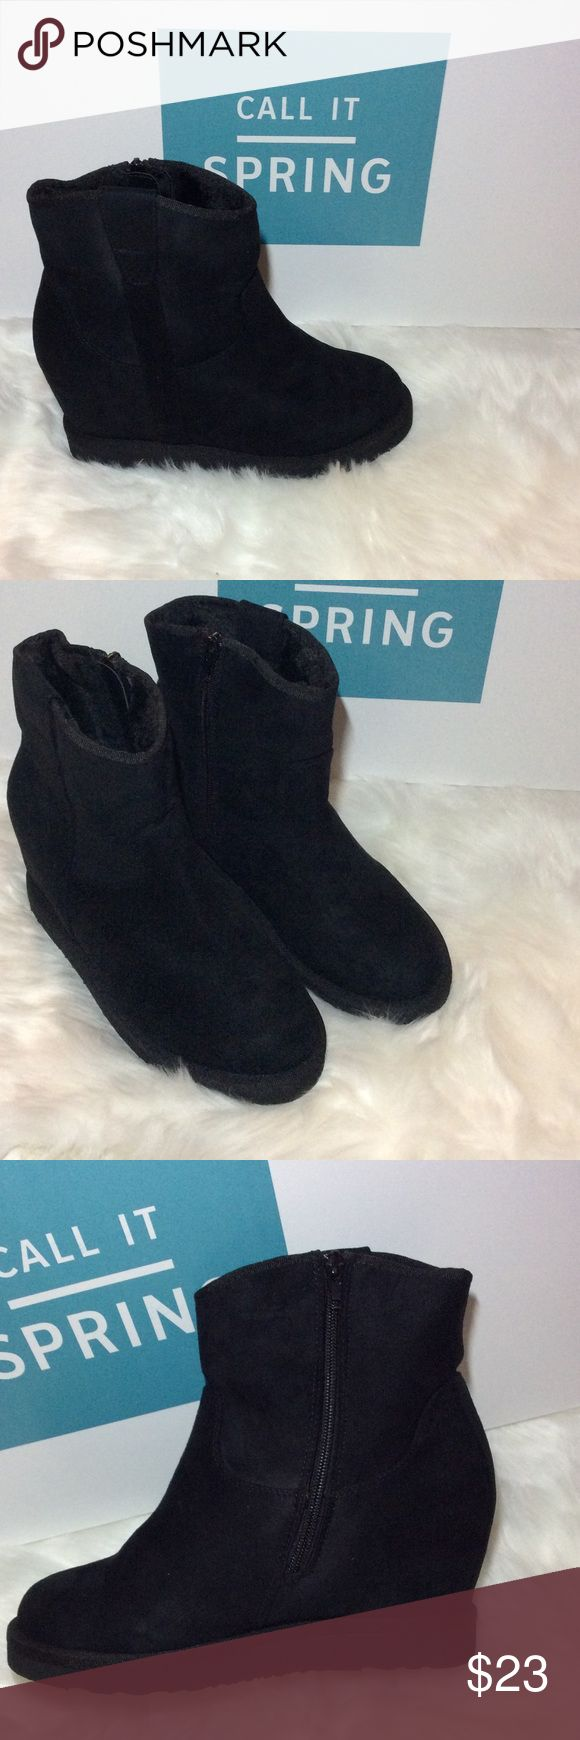 CALL IT SPRING GEORGENIA BOOTS New CALL IT SPRING  GEORGENIA black high top boots NWB Call It Spring Shoes Ankle Boots & Booties